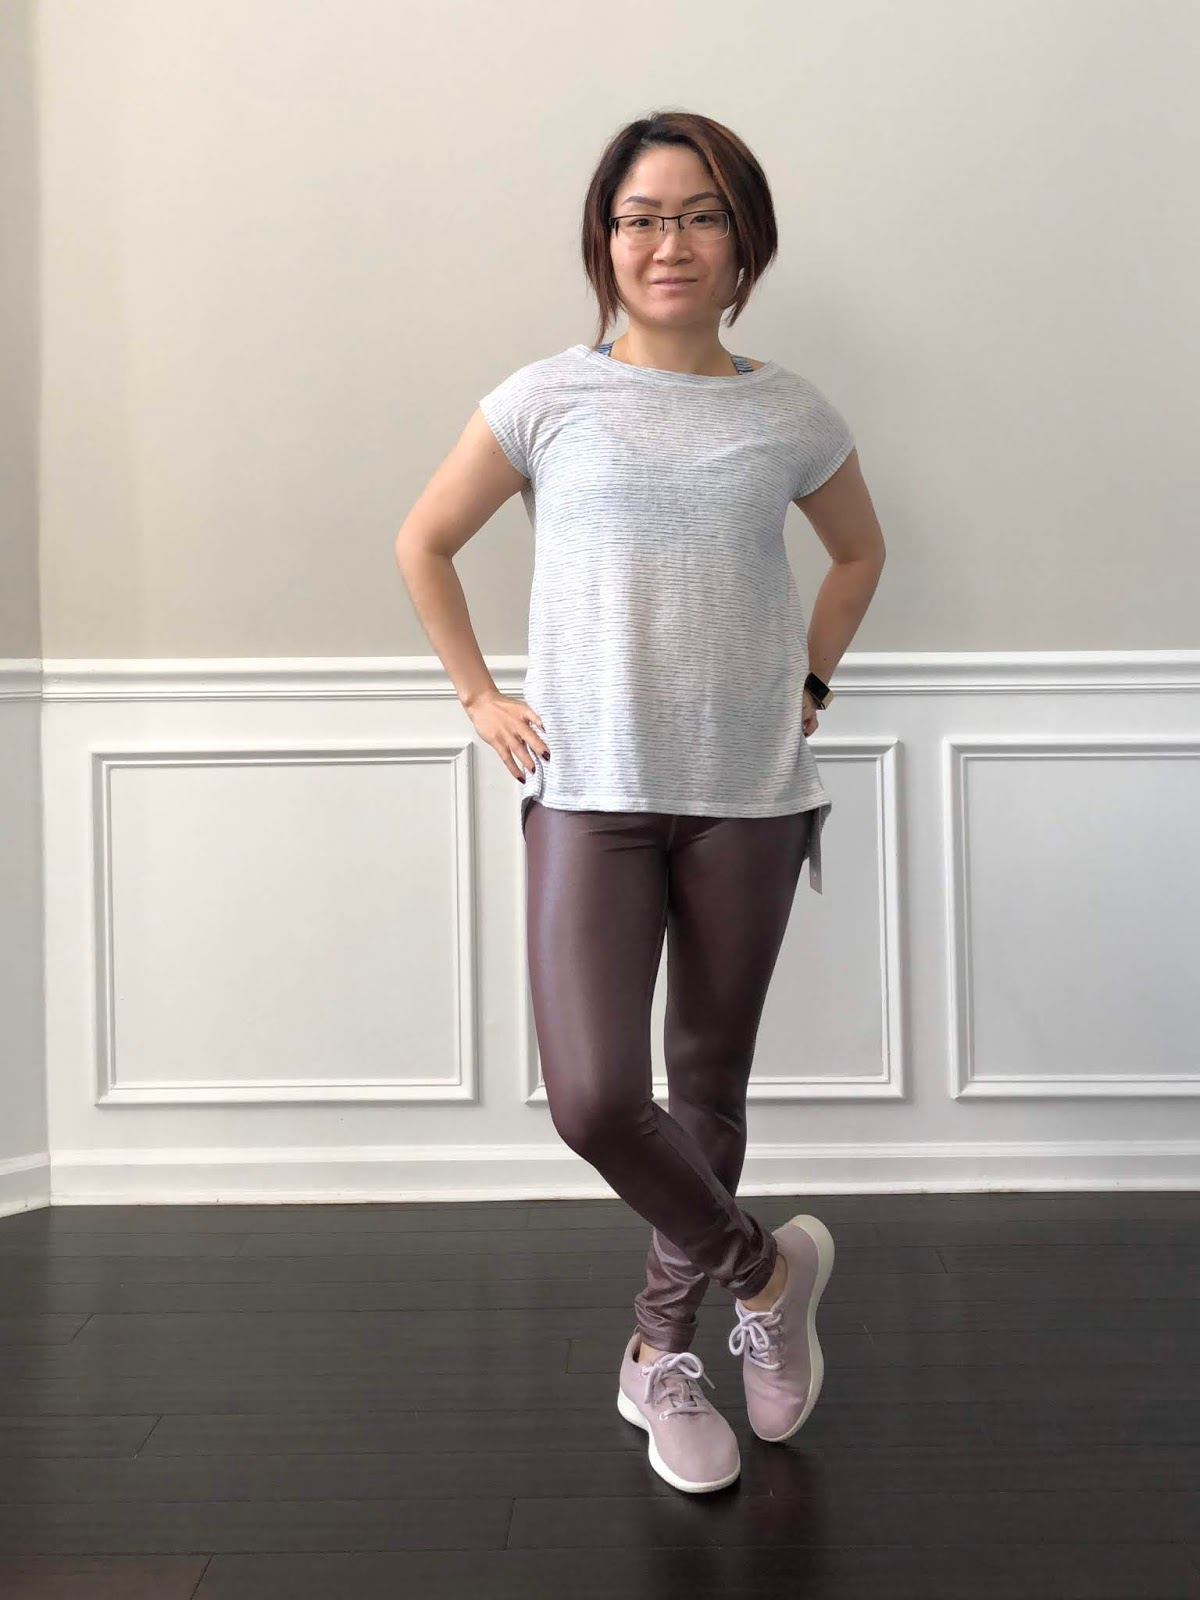 ca07e77eed1 Petite Impact  Fit Review! Athleta Elation Shimmer Tight